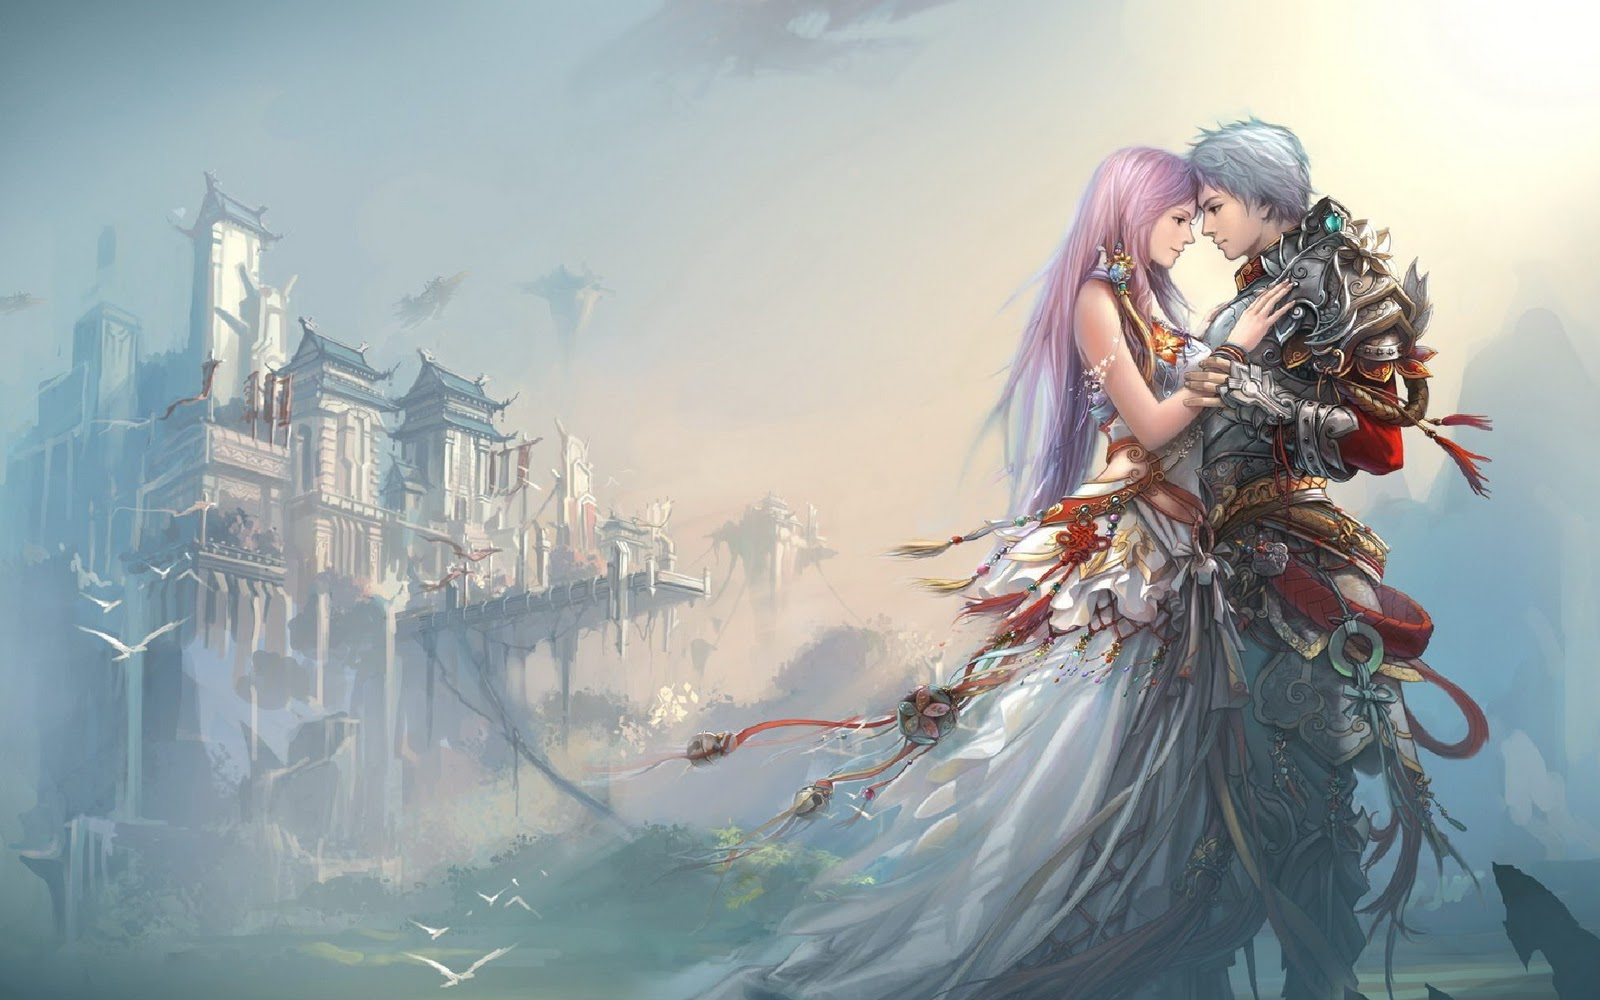 Love Wallpaper Boy And Girl : Anime Boy Girl Love castle HD Wallpaper Love Wallpapers ...